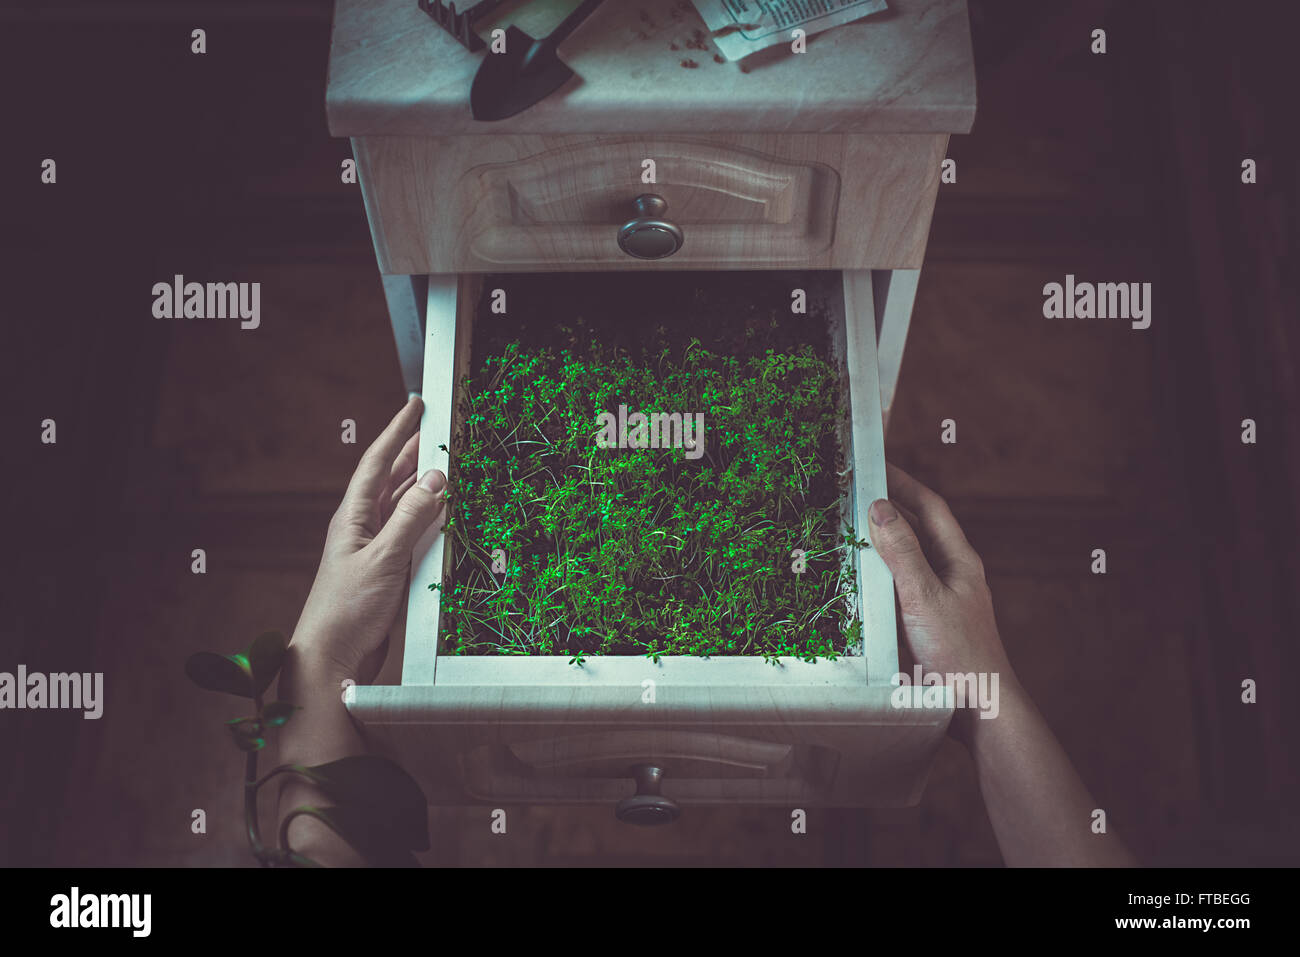 Gardener's drawer - Stock Image